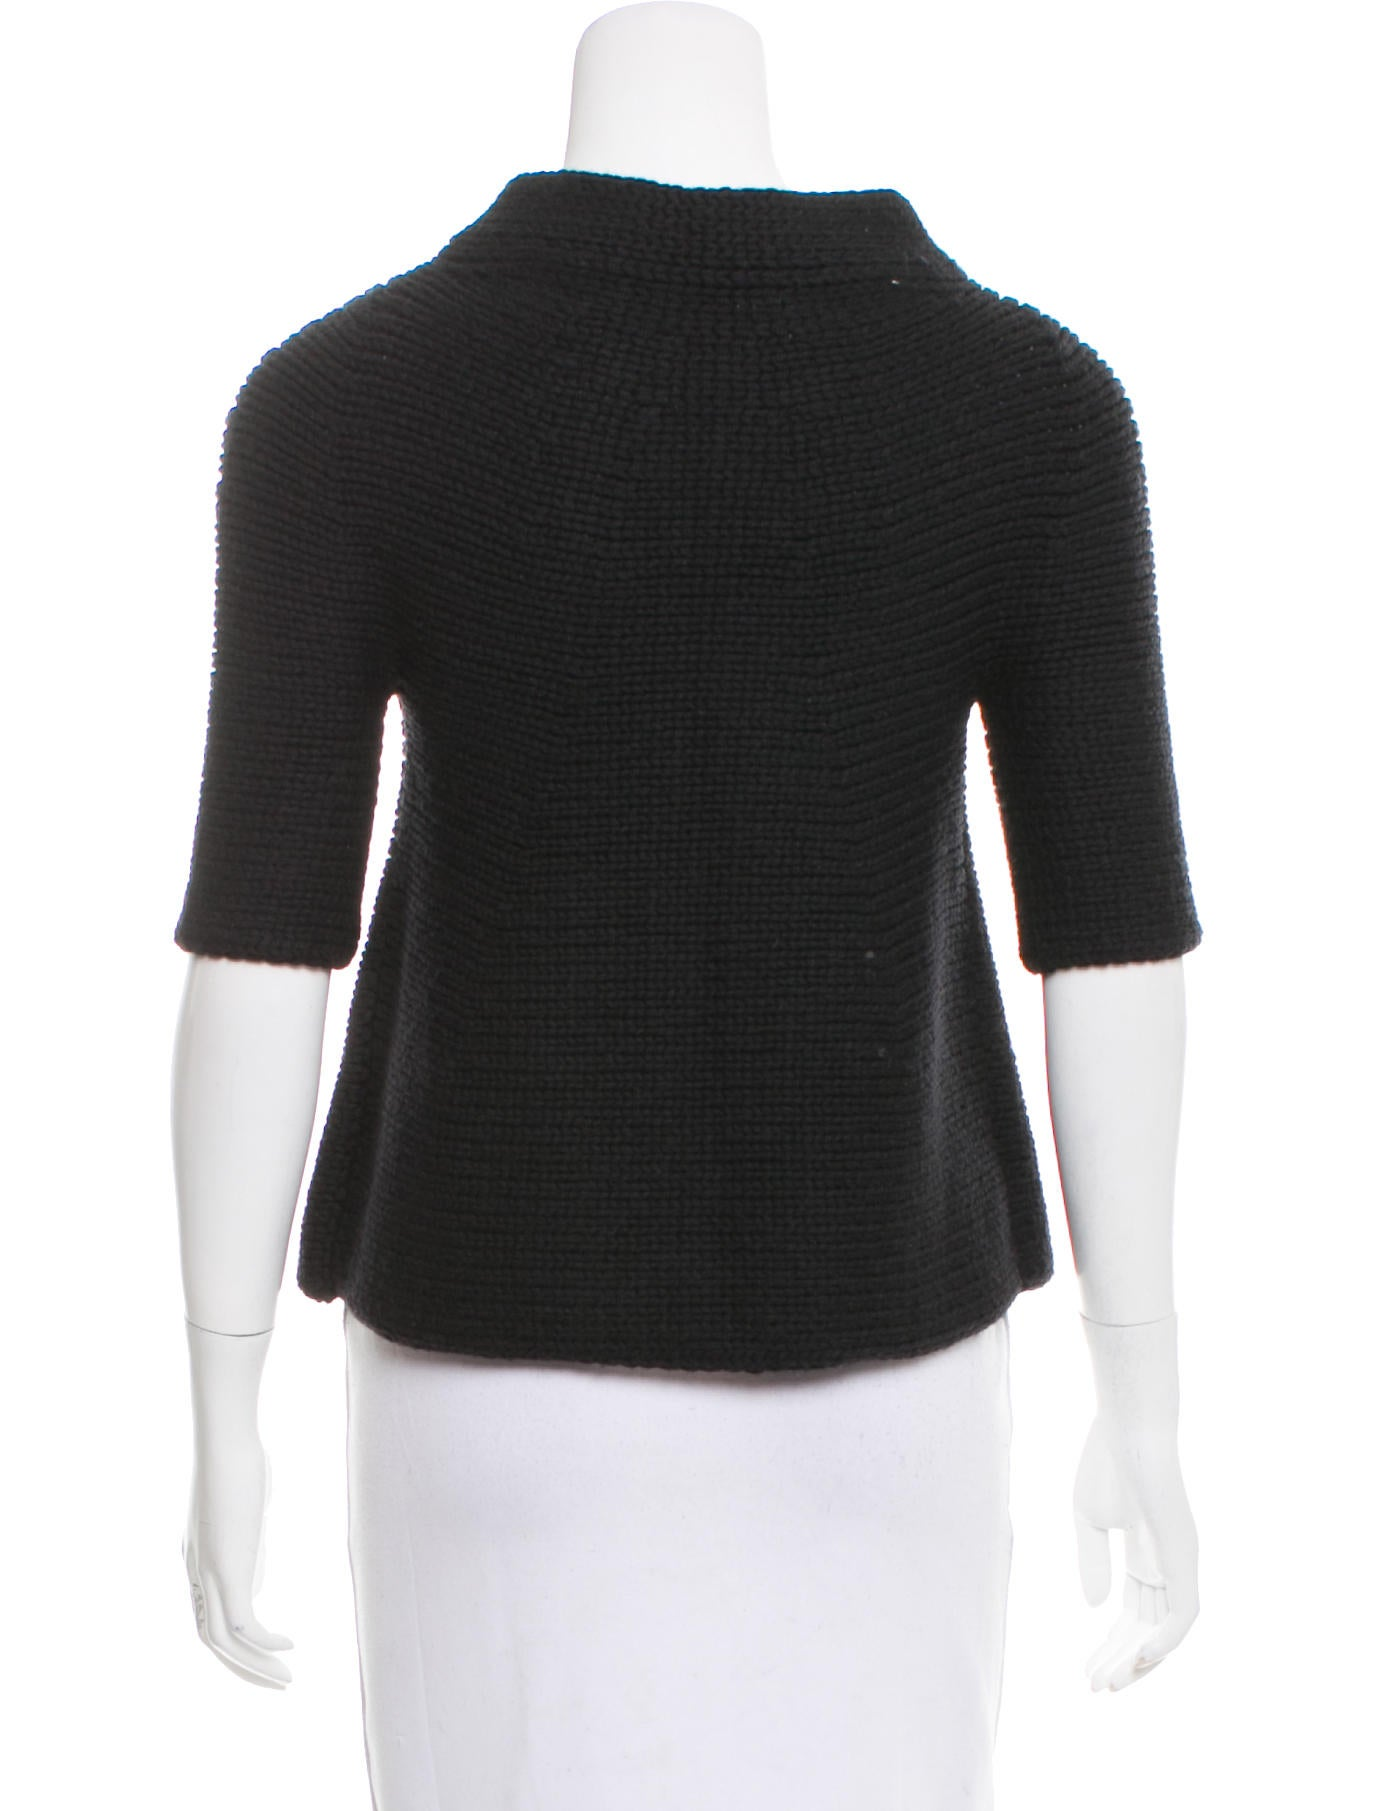 Vince Short Sleeve Wool Cardigan - Clothing - WVN28172 | The RealReal